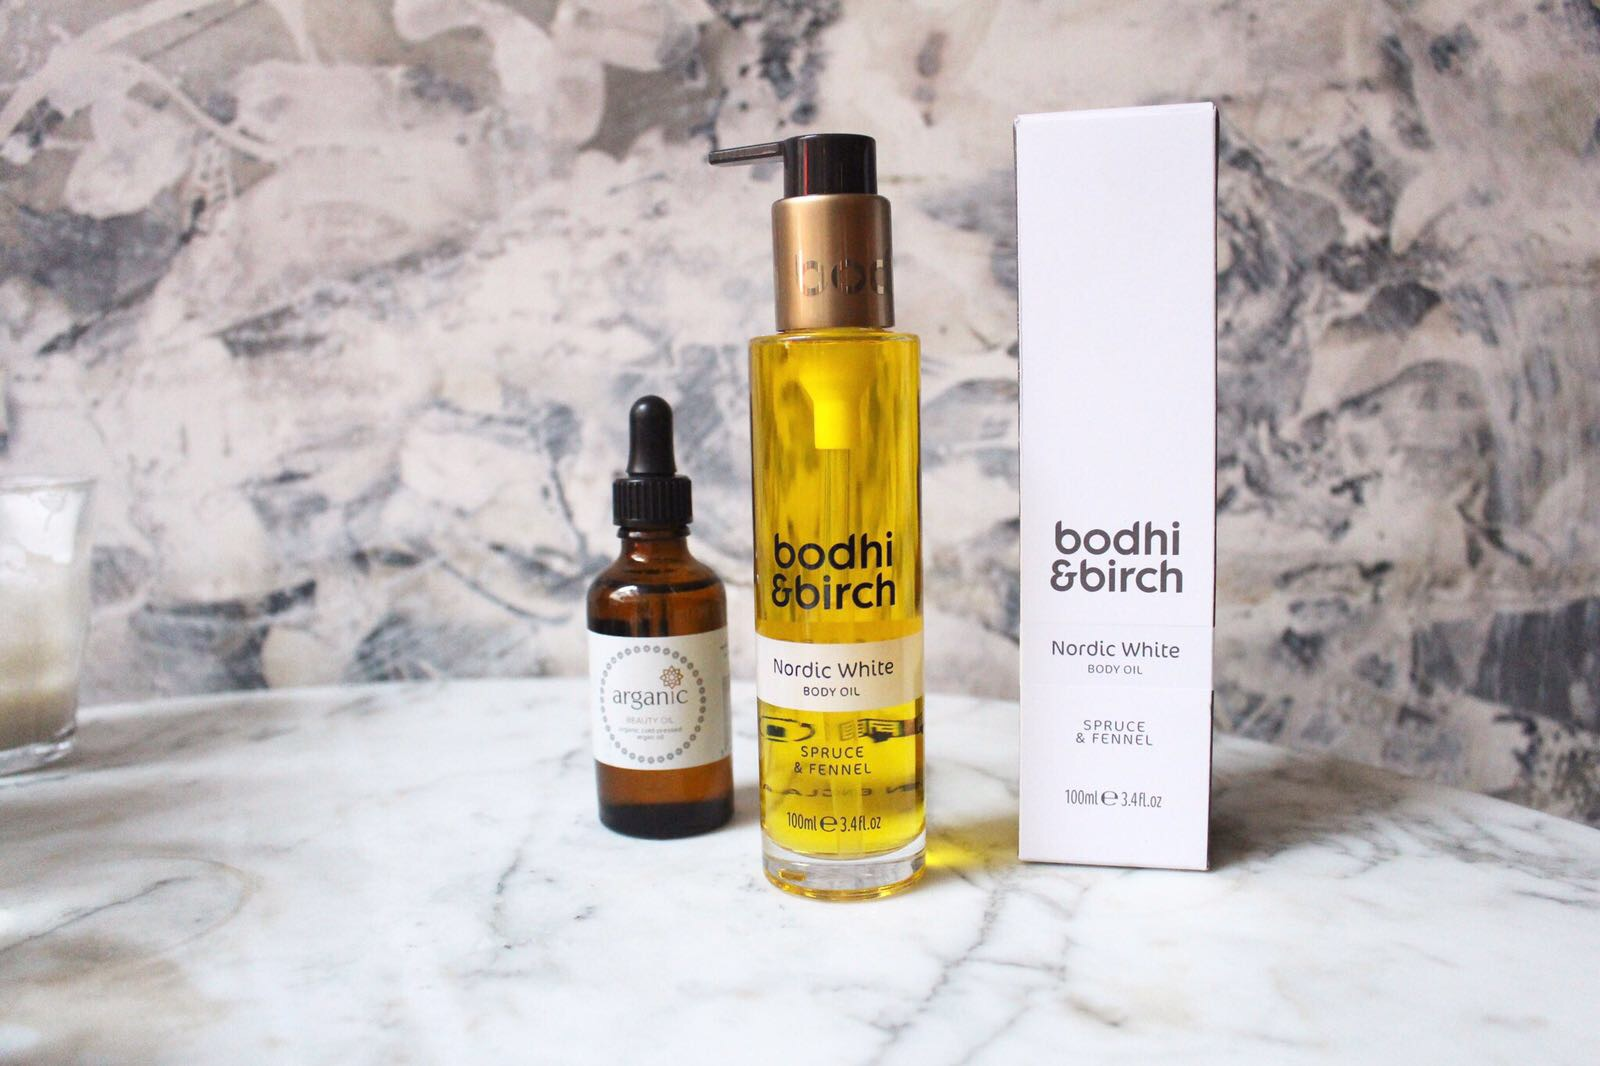 The Nordic White body oil from bodhi & birch